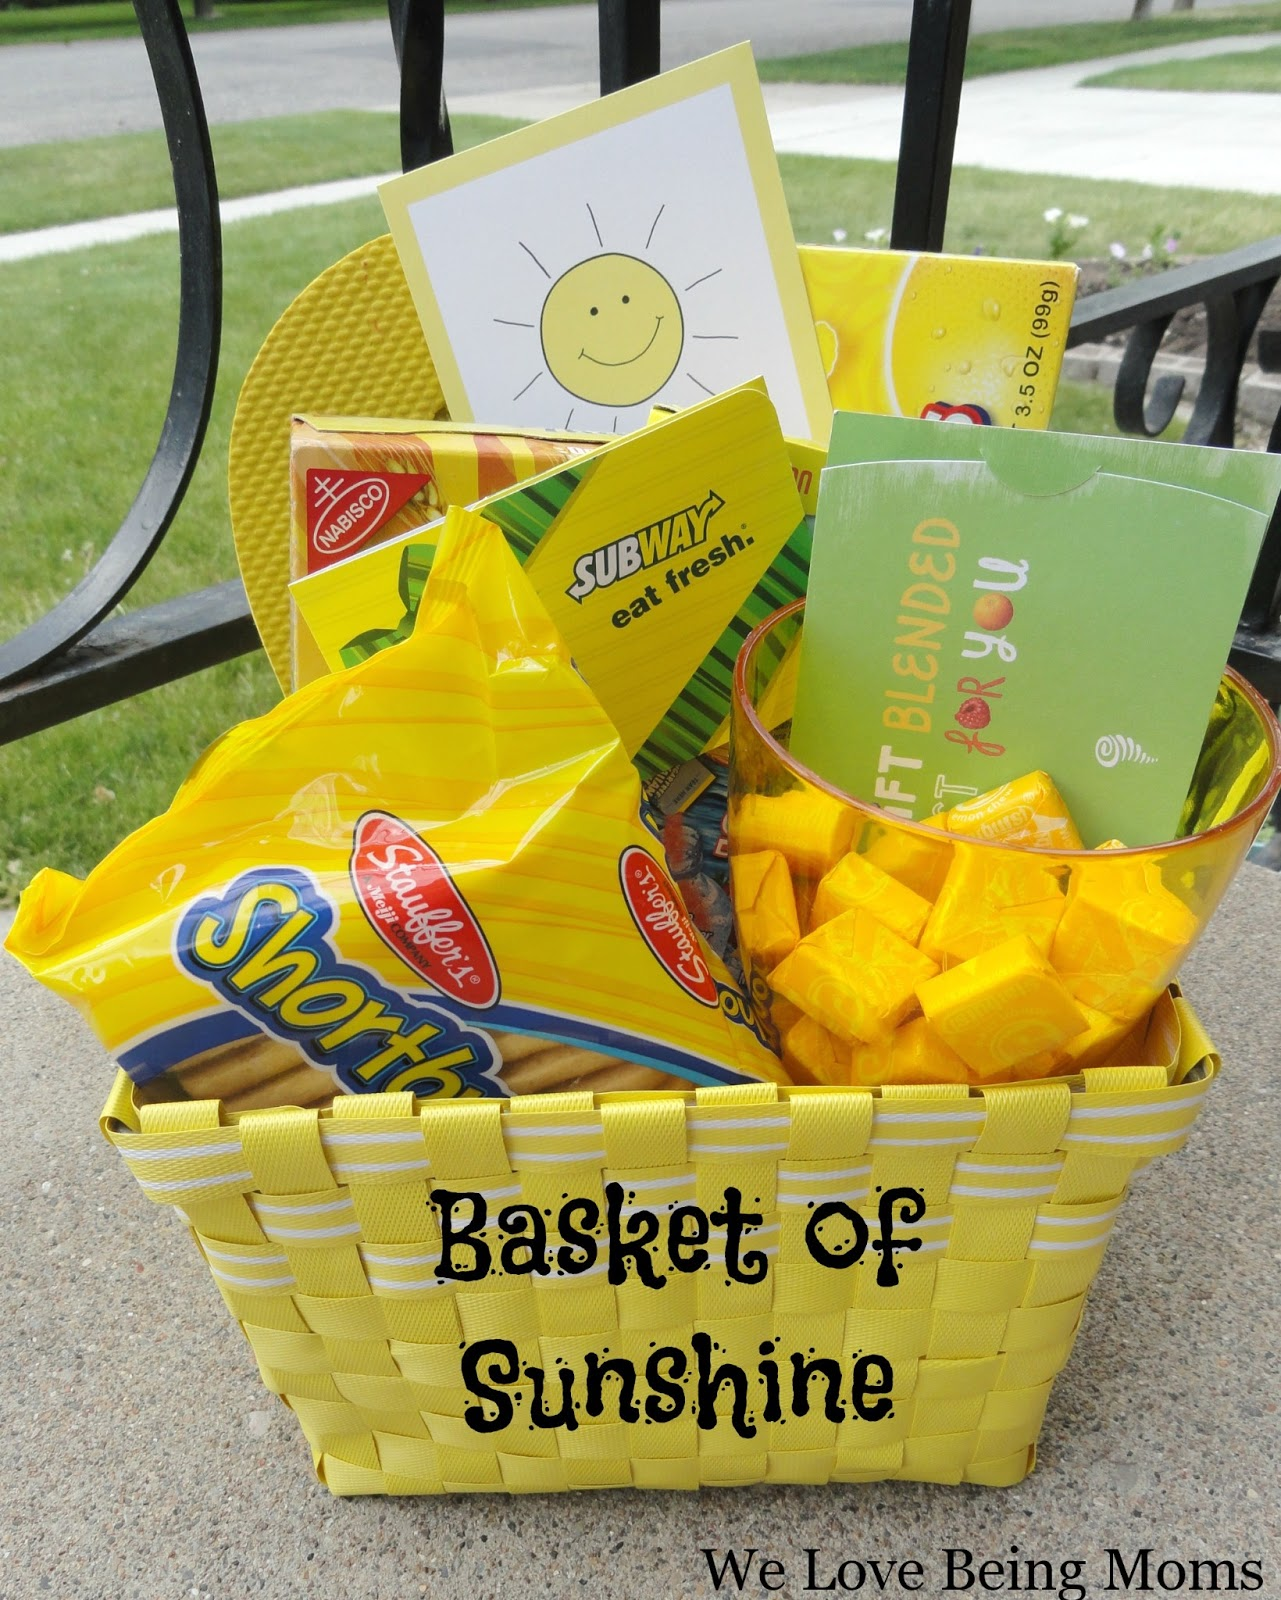 image regarding Basket of Sunshine Printable called We Take pleasure in Remaining Mothers!: Basket of Sun